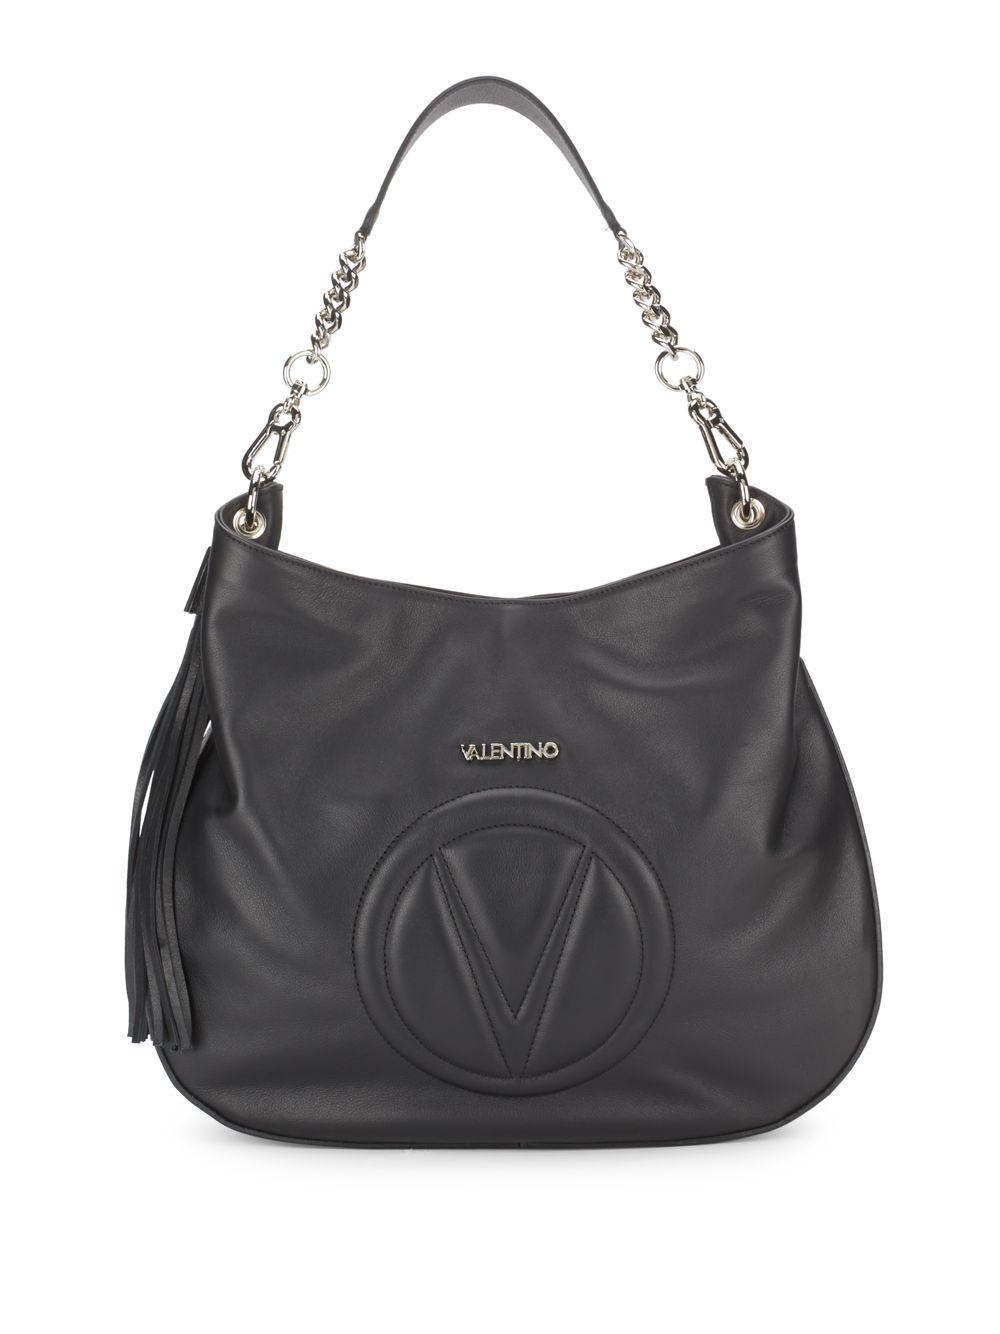 Valentino By Mario Valentino Penny Leather Shoulder Bag In